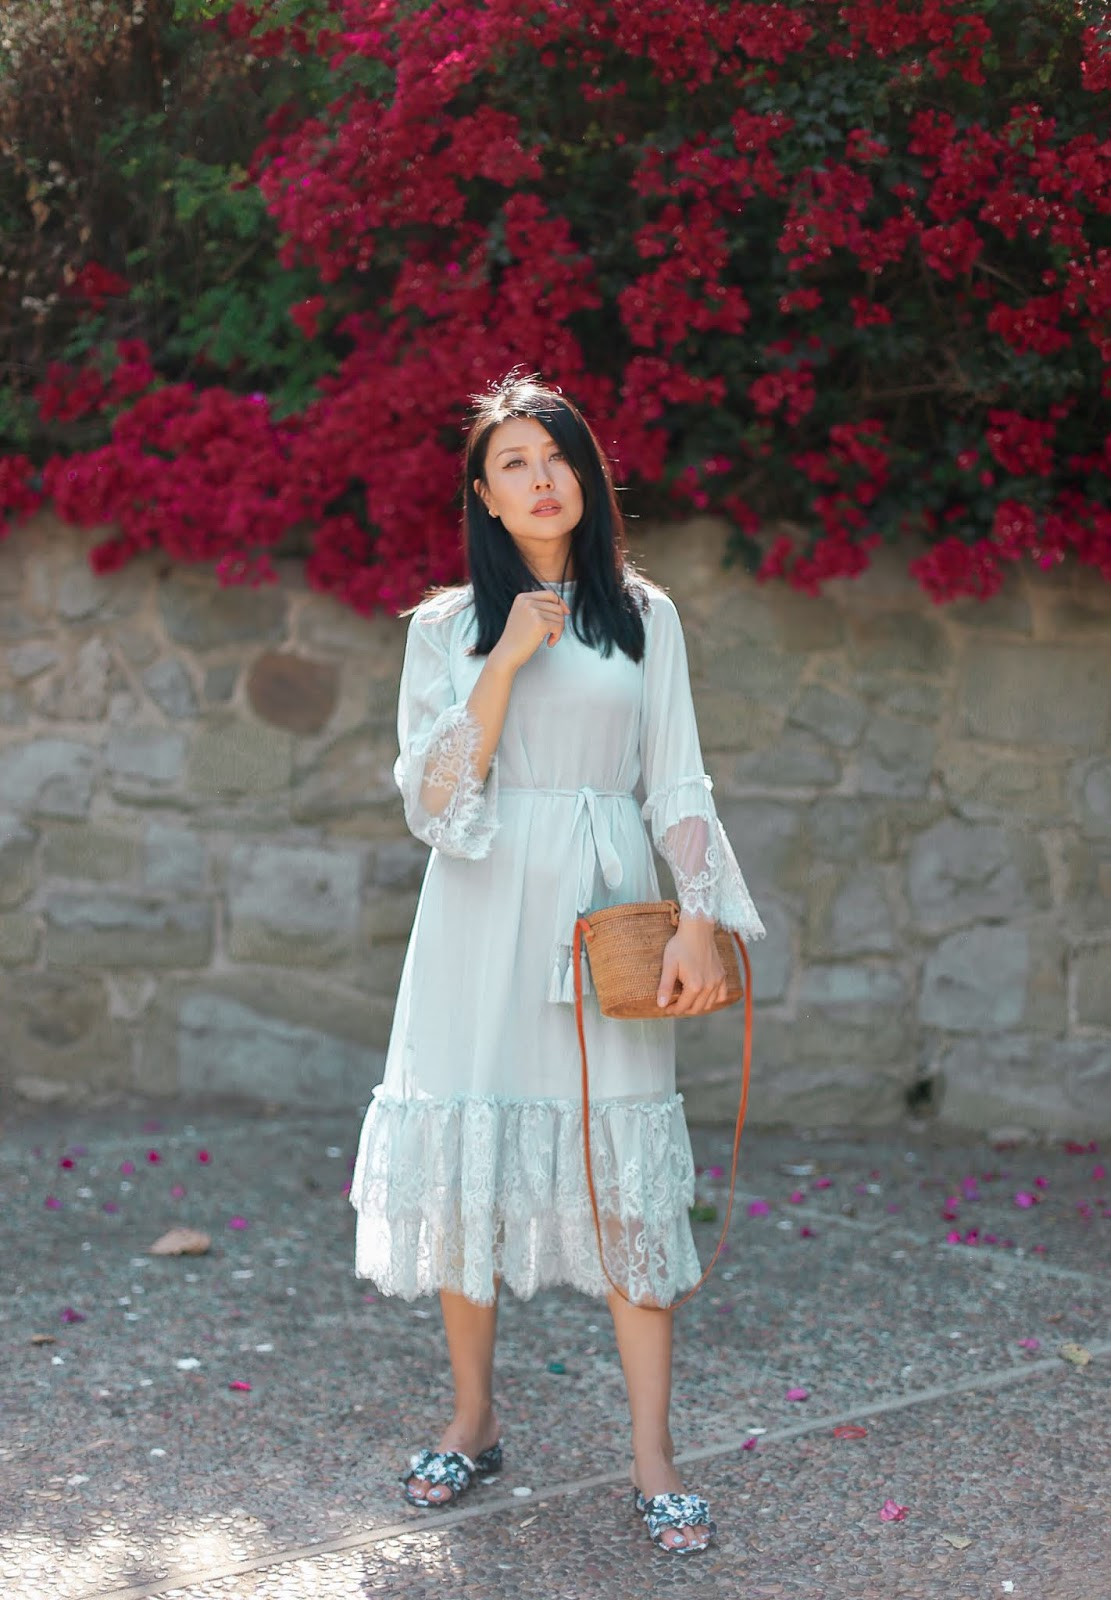 summer pastel blue dress outfit inspiration